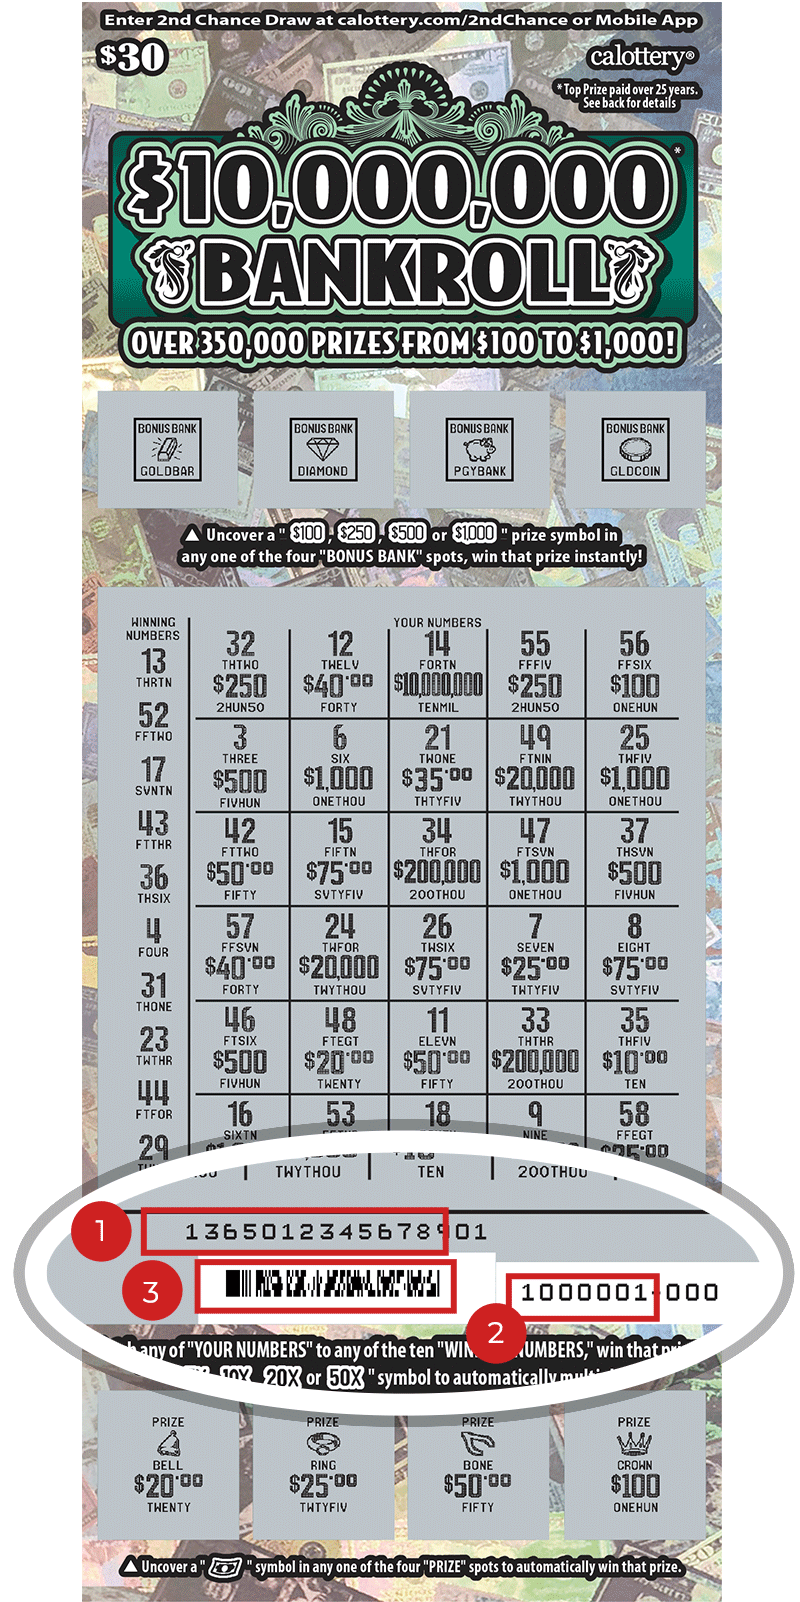 Image of a Scratched $30 $10,000,000 Bankroll Scratcher showing a circle in the lower part of the ticket which highlights the placement of the three items listed in the legend below. #1 is the Entry Code (use the first 13 digits only). #2 is the Ticket ID (use the first 7 digits only). #3 is the barcode which can be scanned to use Check-a-Ticket or enter 2nd Chance.